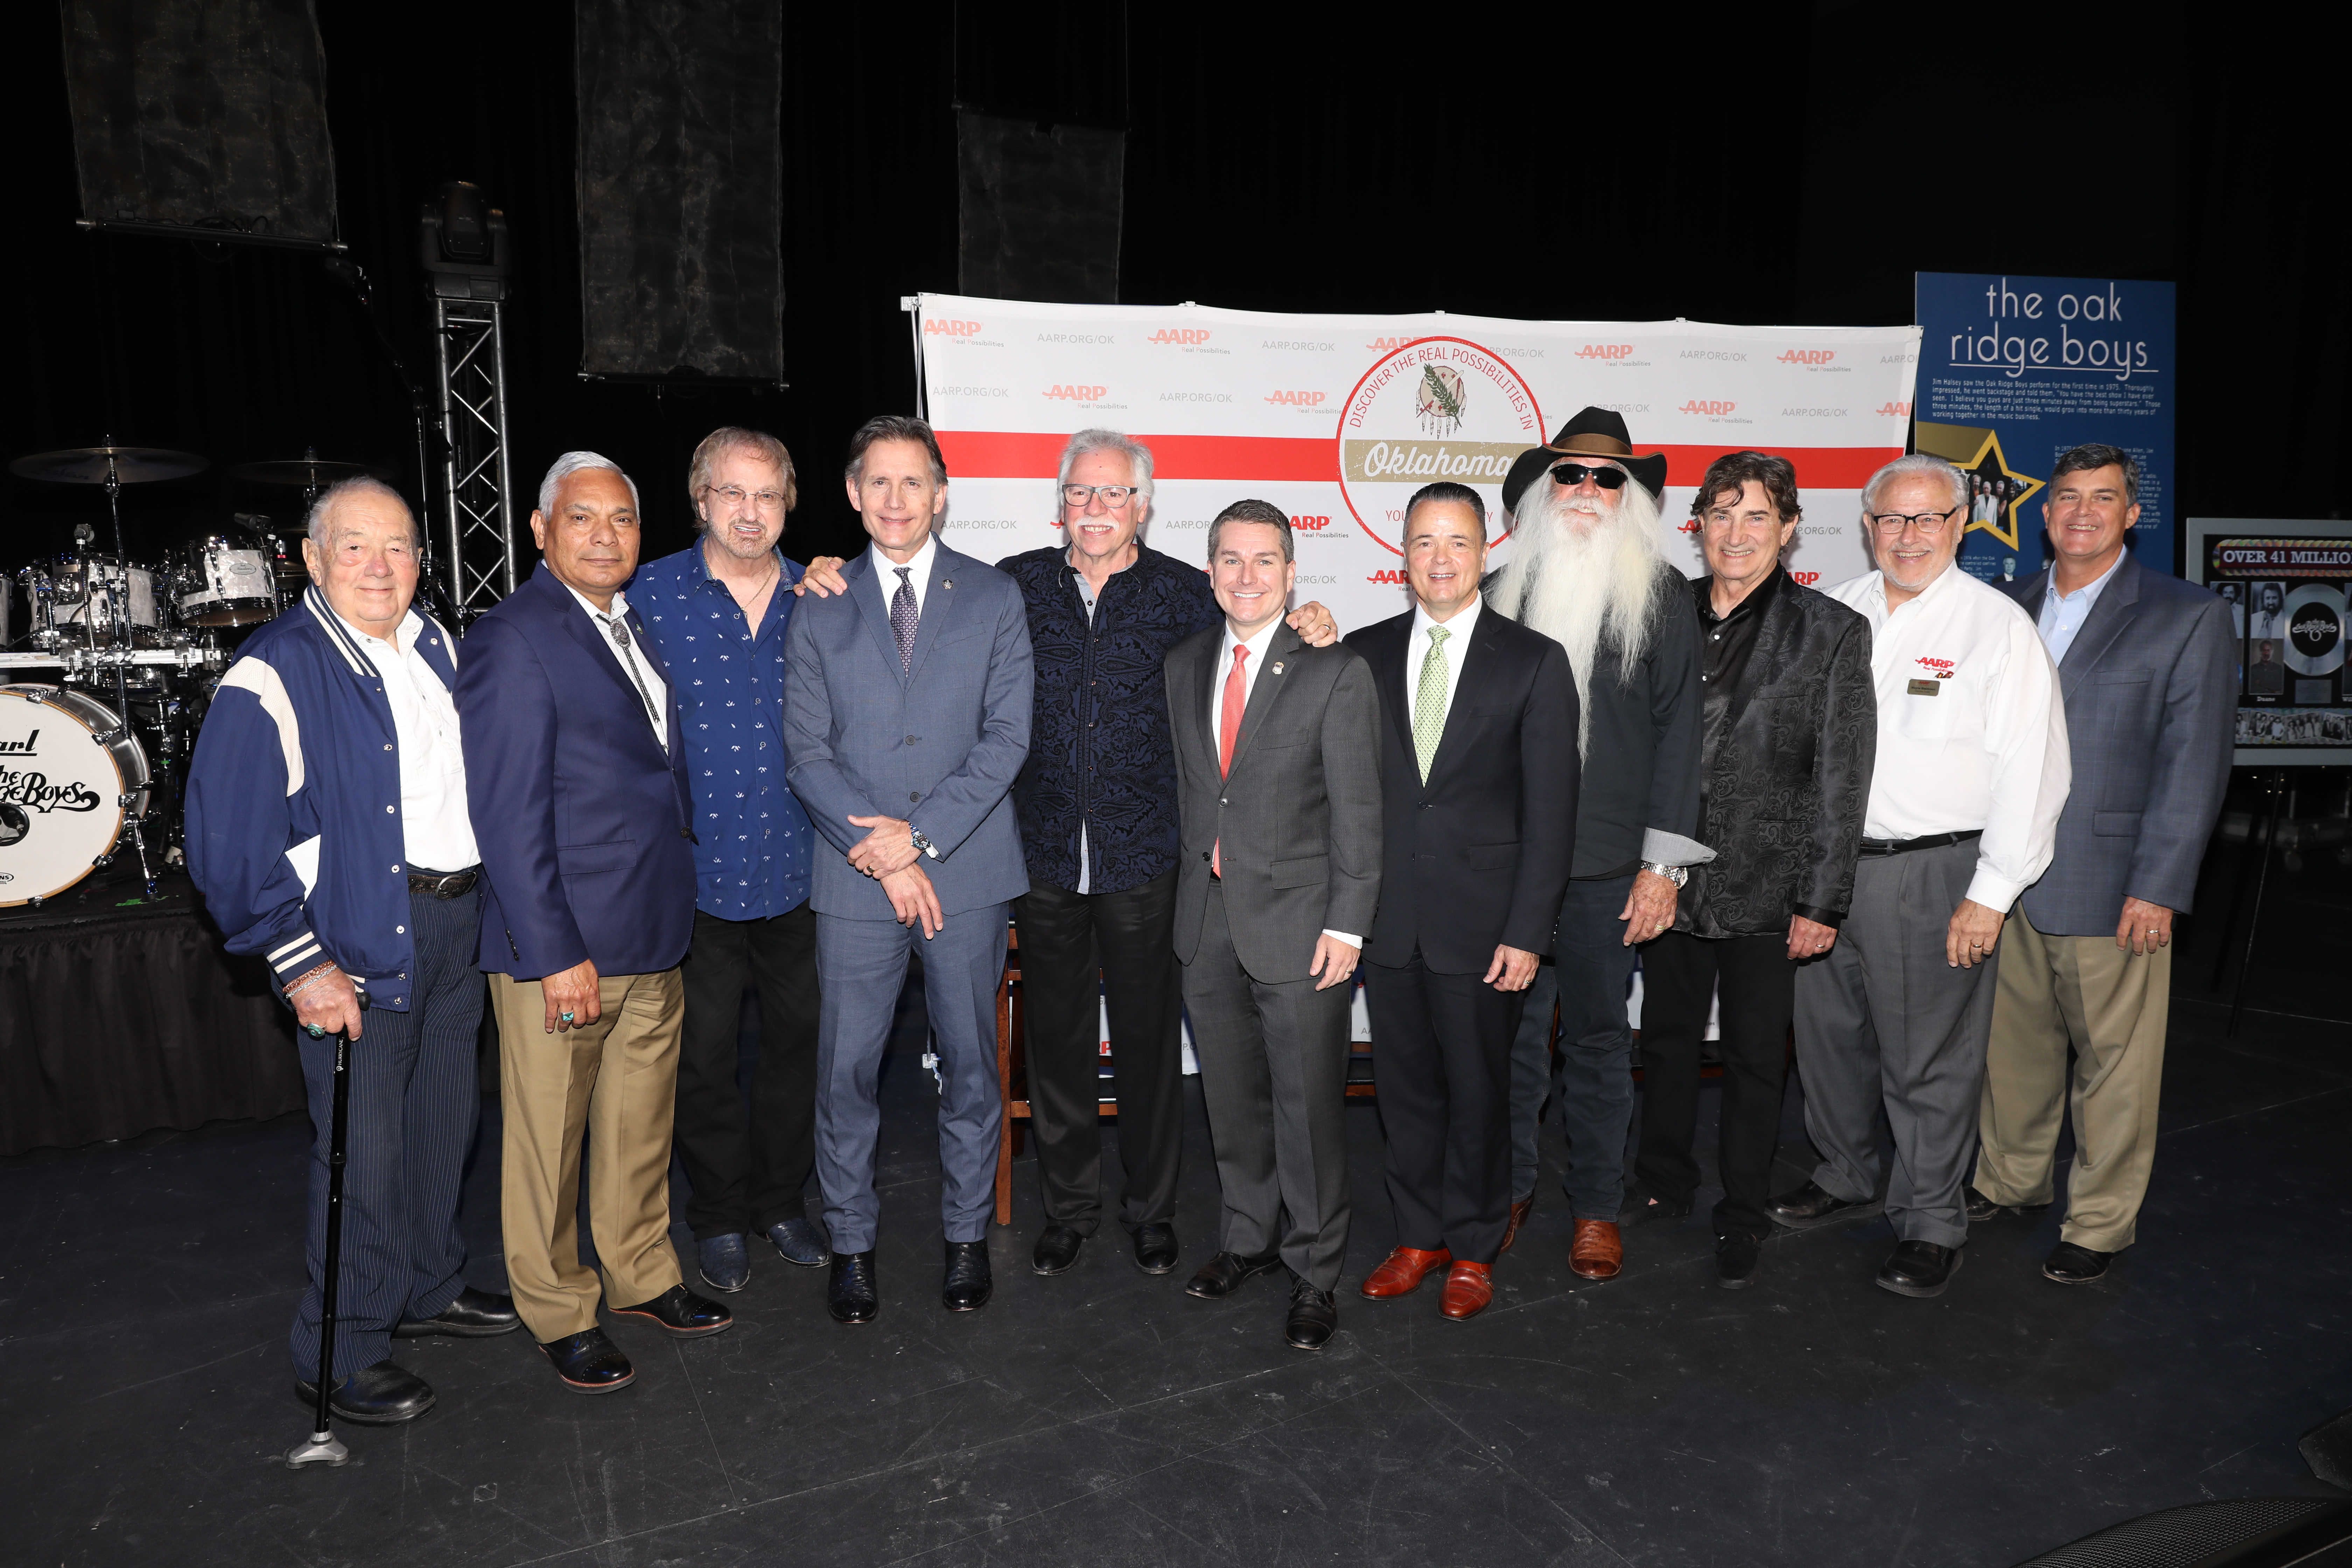 The Oak Ridge Boys join elected officials, AARP and Manager Jim Halsey in celebration of PSA announcement